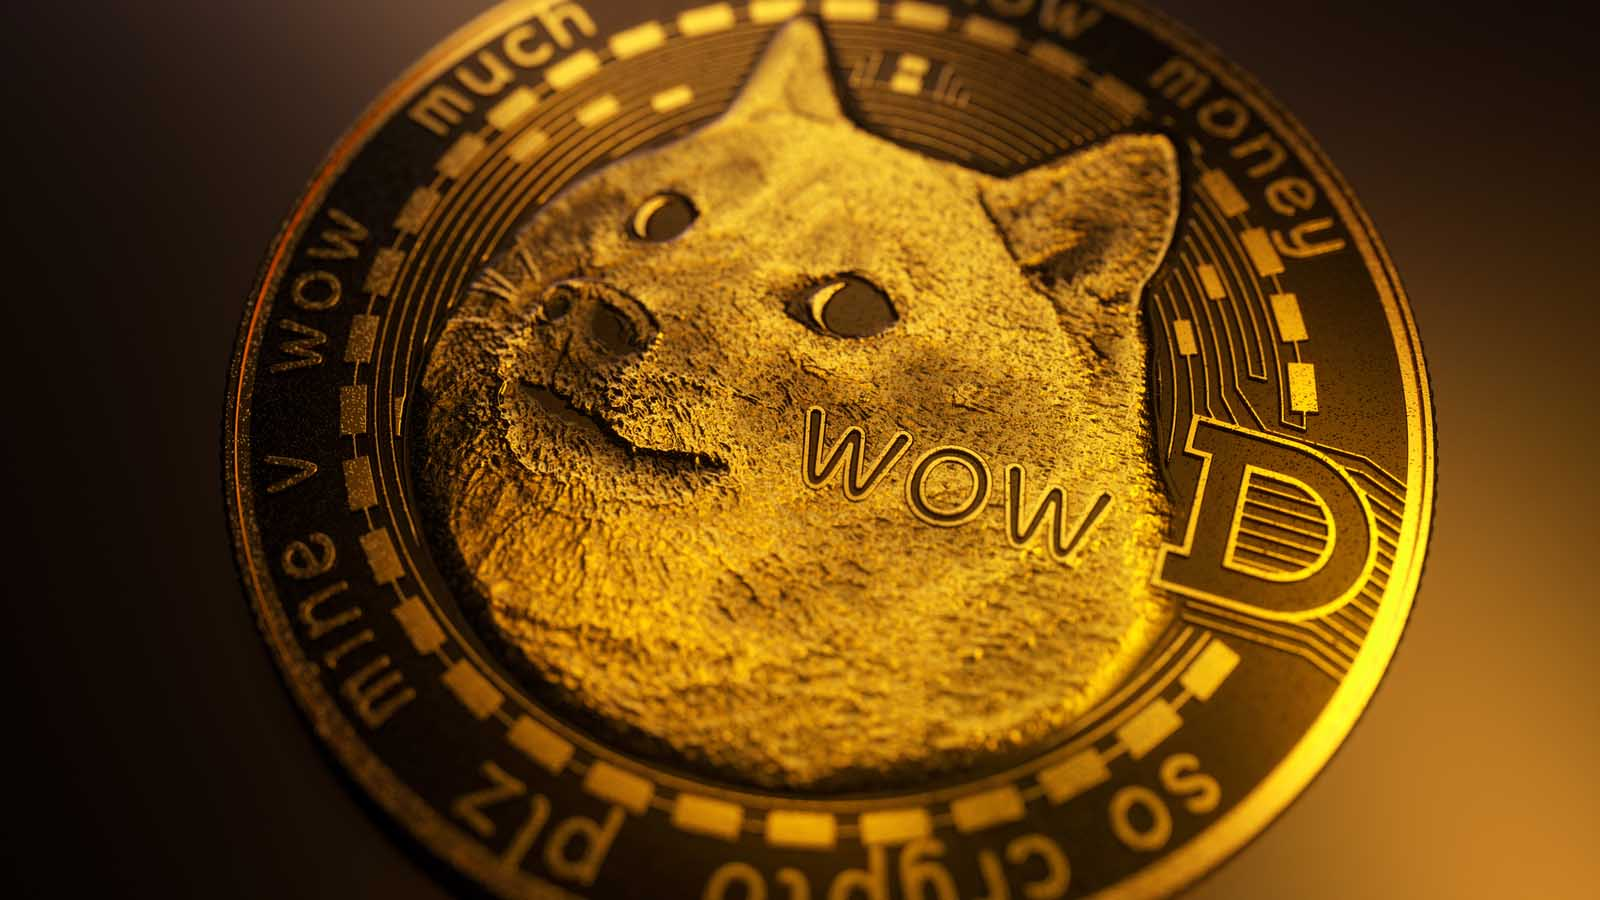 Dogecoin Price Predictions: Can DOGE Leap Toward $1 Again in 2021?